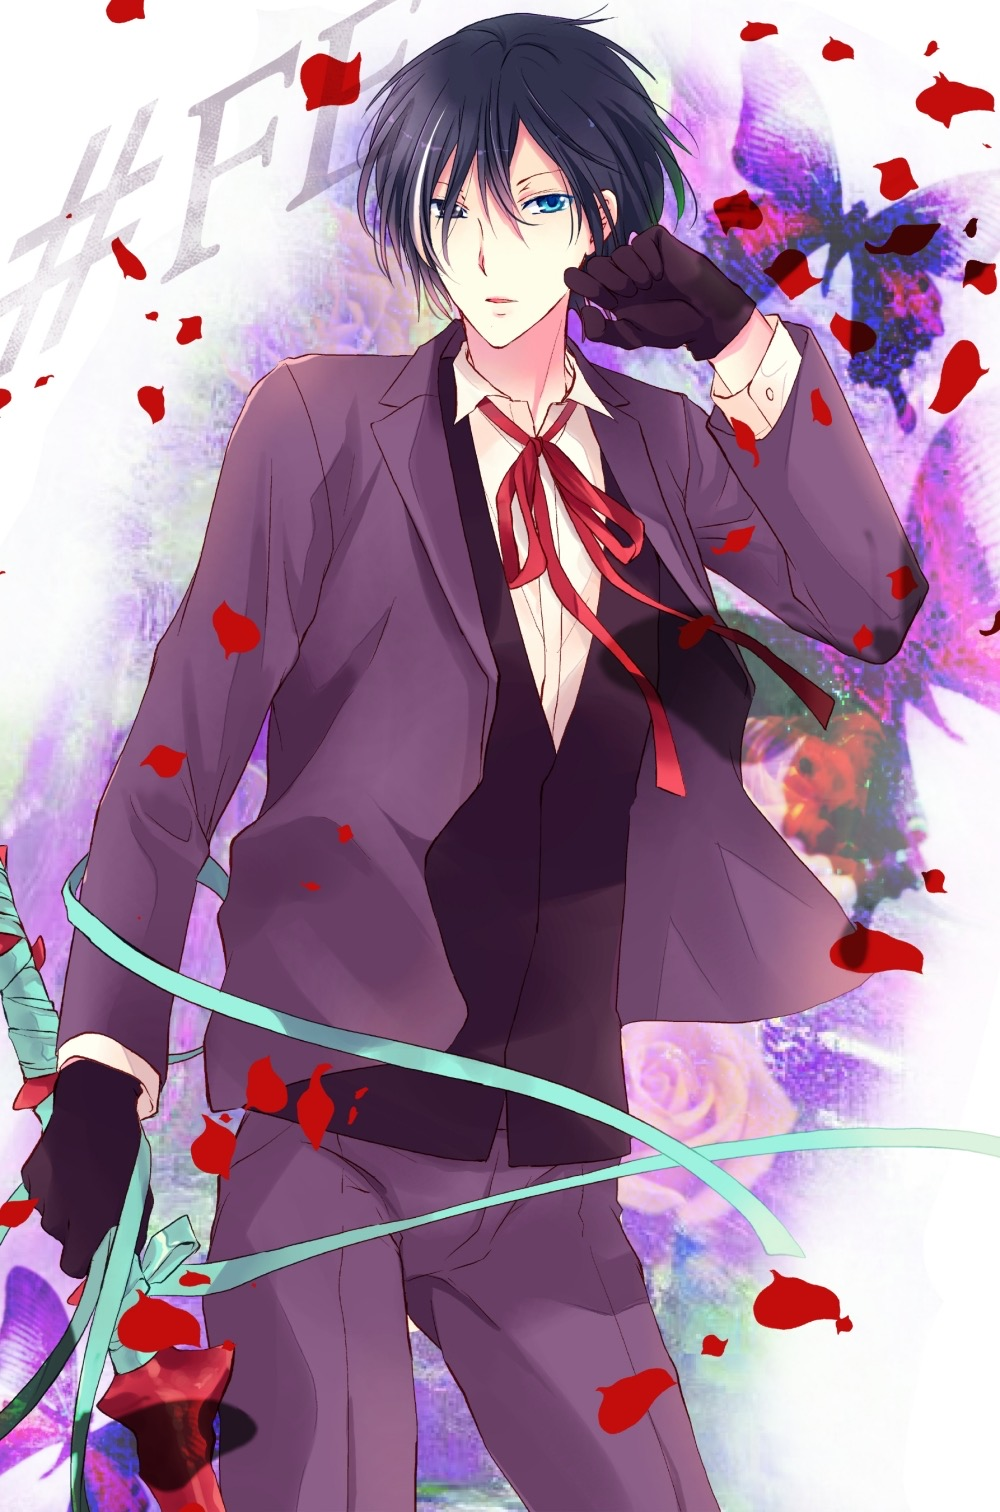 1boy bandage black_hair blue_eyes bow bowtie butterfly copyright_name flower gen'ei_ibunroku_sharp_fe gloves highres male_focus multicolored_hair open_mouth petals rose shirayuki_shion solo sword tsurugi_yashiro two-tone_hair weapon white_hair